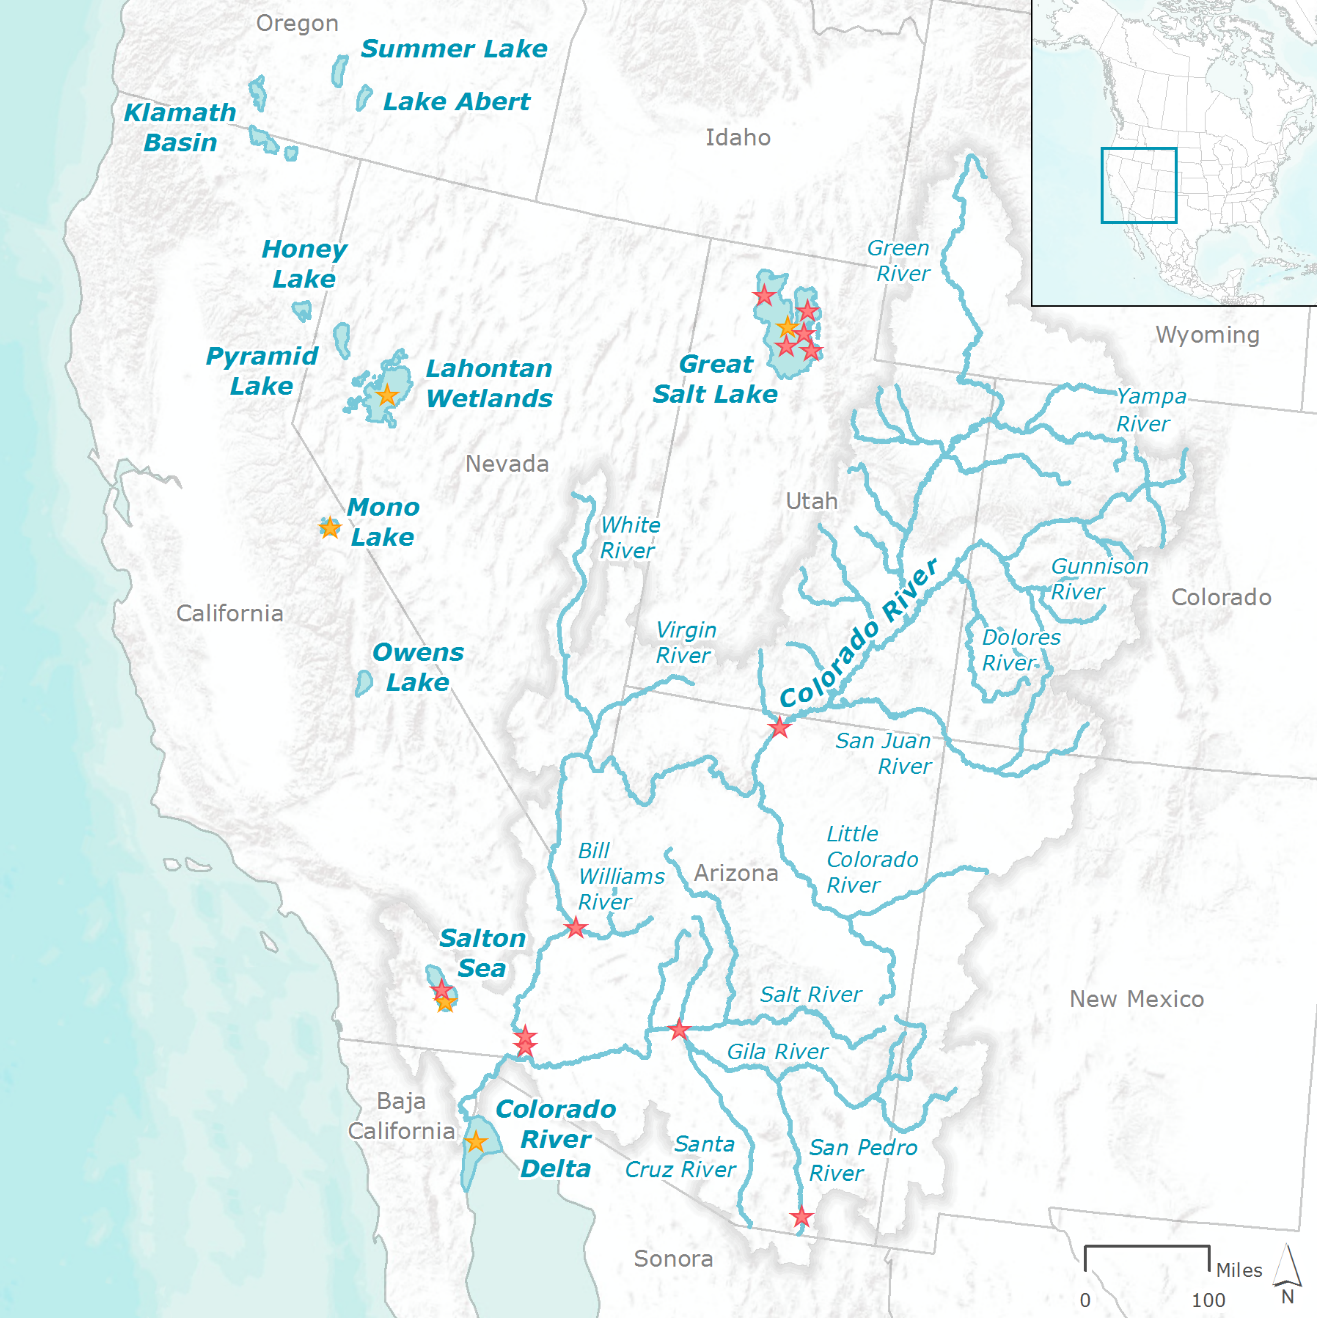 Map of Water Assets and IBAs in Western US